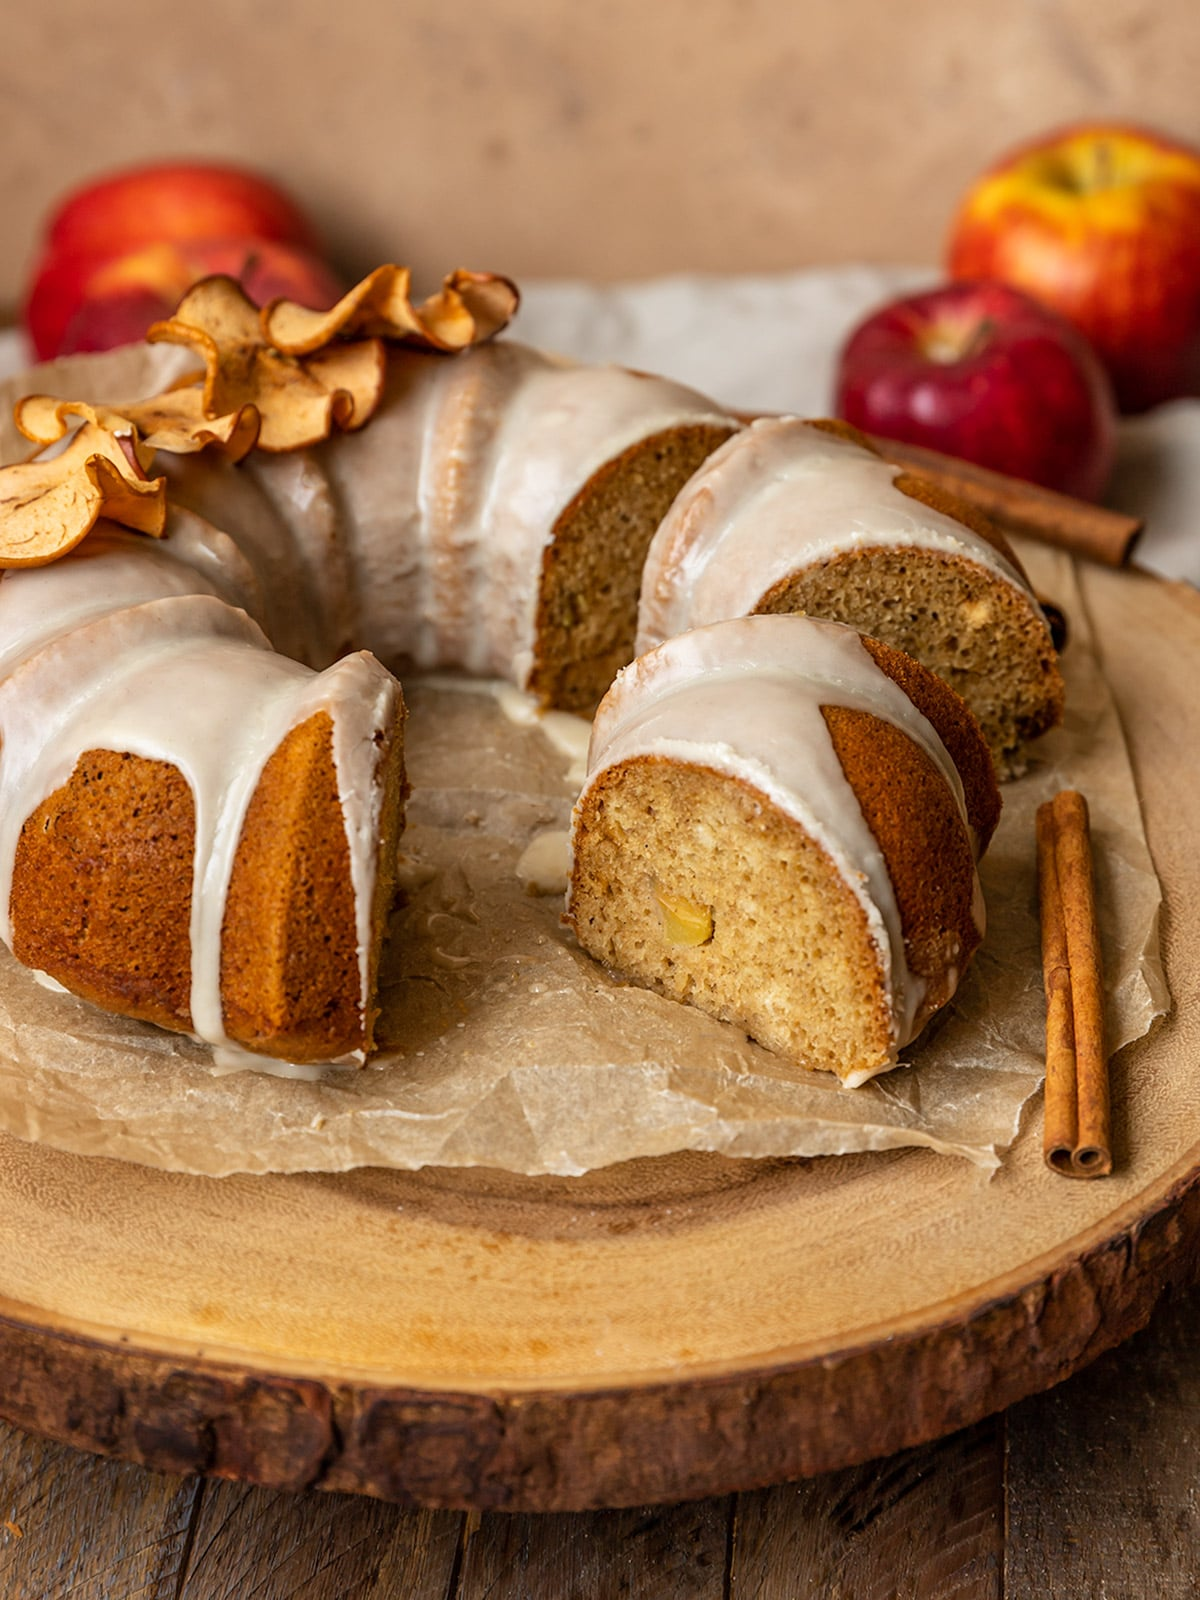 apple bundt cake sliced on a wooden board